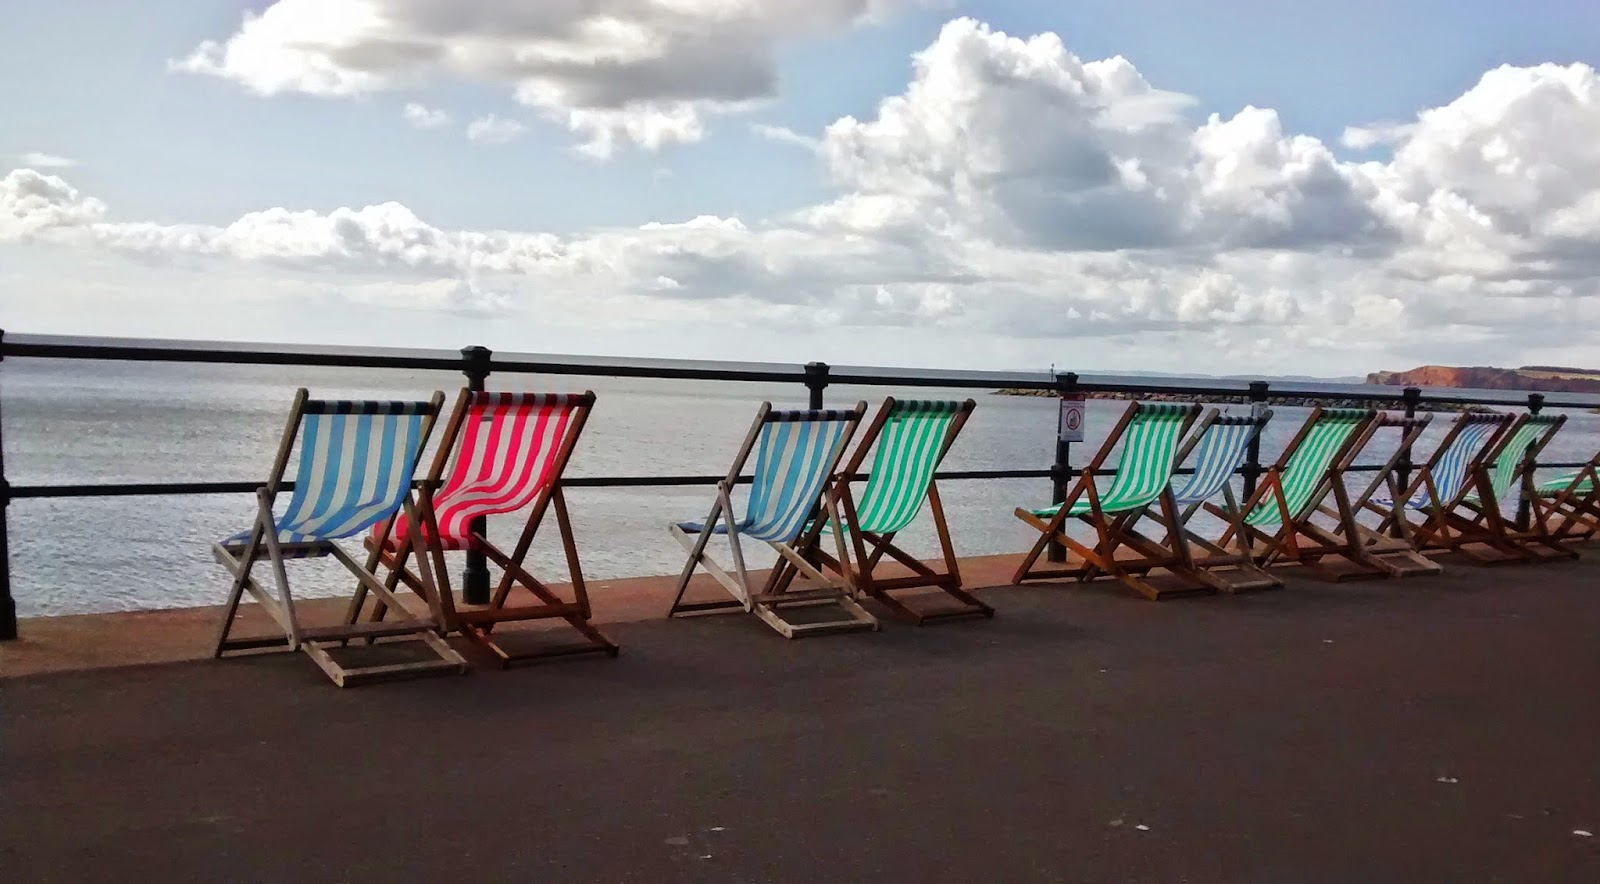 Deckchairs at Sidmouth